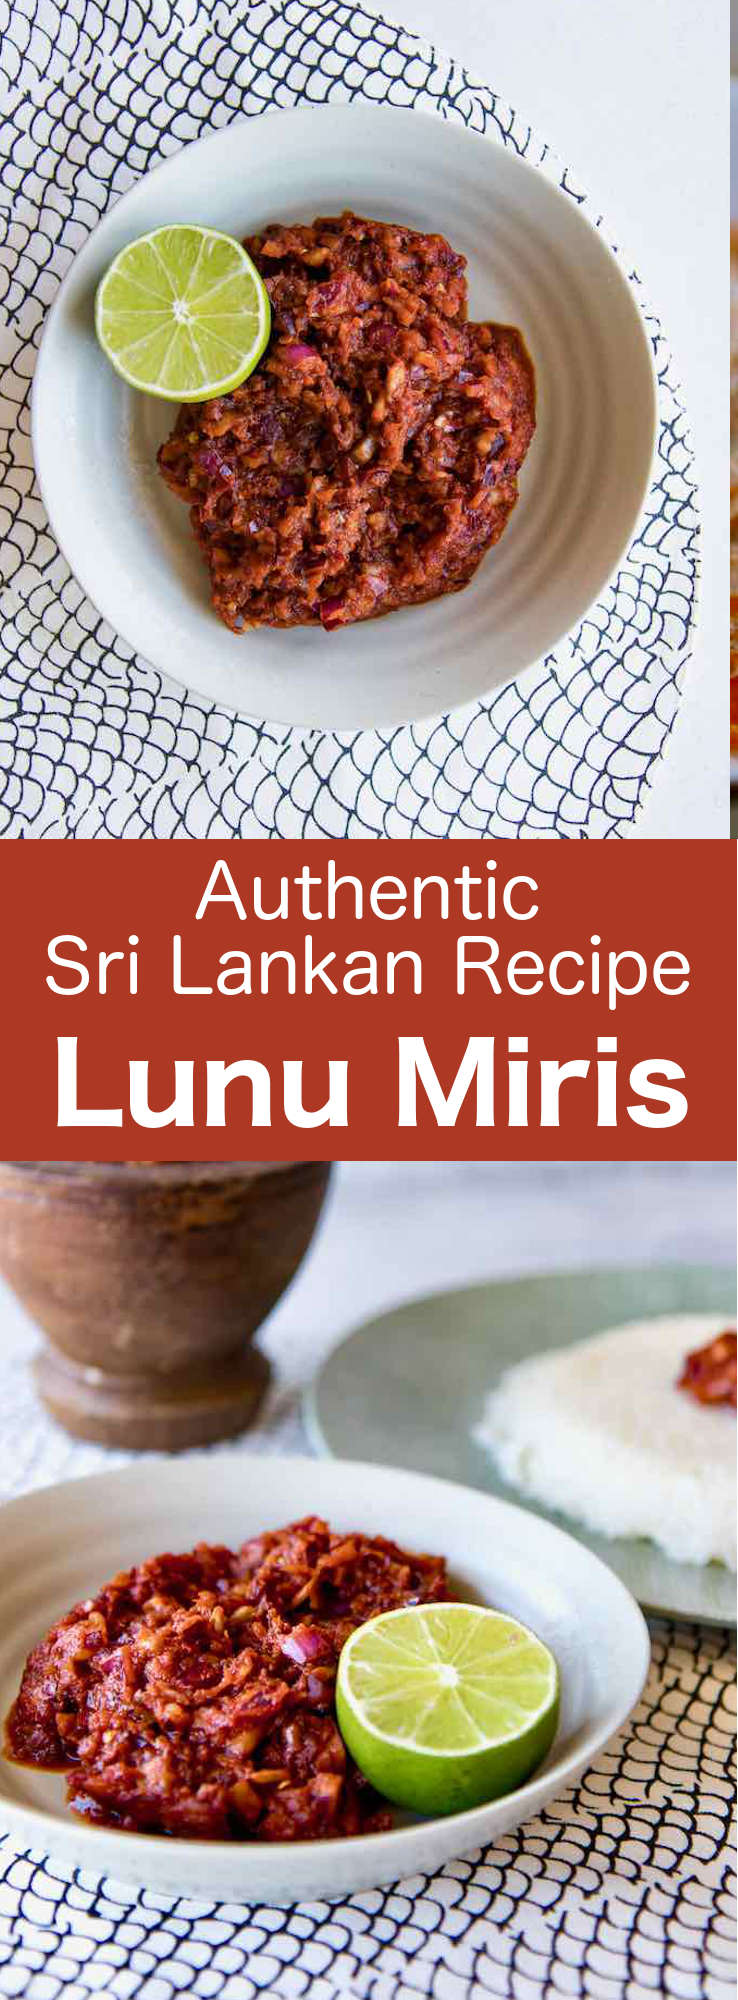 Lunu miris is a spicy sauce or sambol paste, from Sri Lanka that is primarily prepared with red onion and chili. It is most commonly served as a paste or topping for many traditional Sri Lankan dishes. #SriLanka #SriLankanCuisine #SriLankanChutney #SriLankanRecipe #WorldCuisine #196flavors